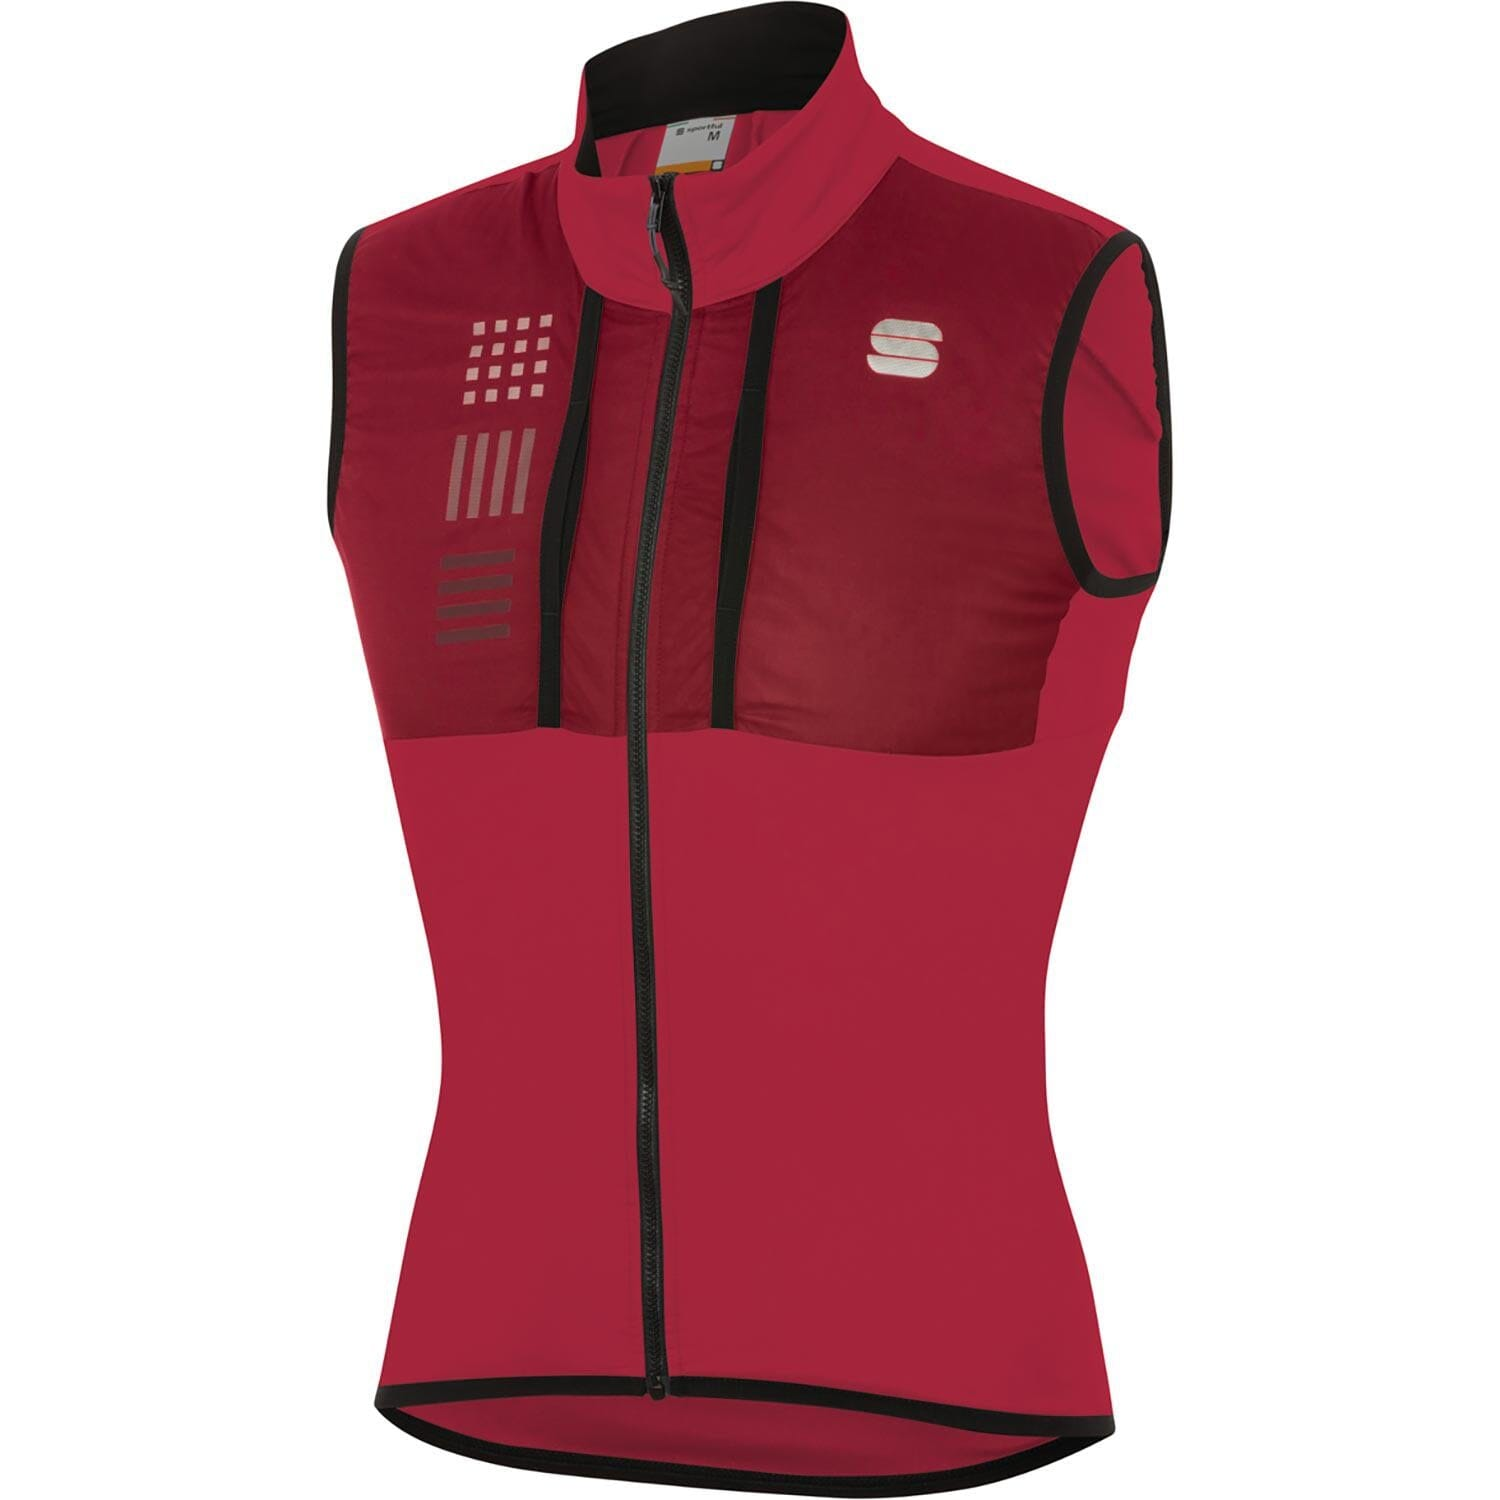 Sportful-Sportful Giara Layer Vest-Red Rumba-S-SF205066222-saddleback-elite-performance-cycling